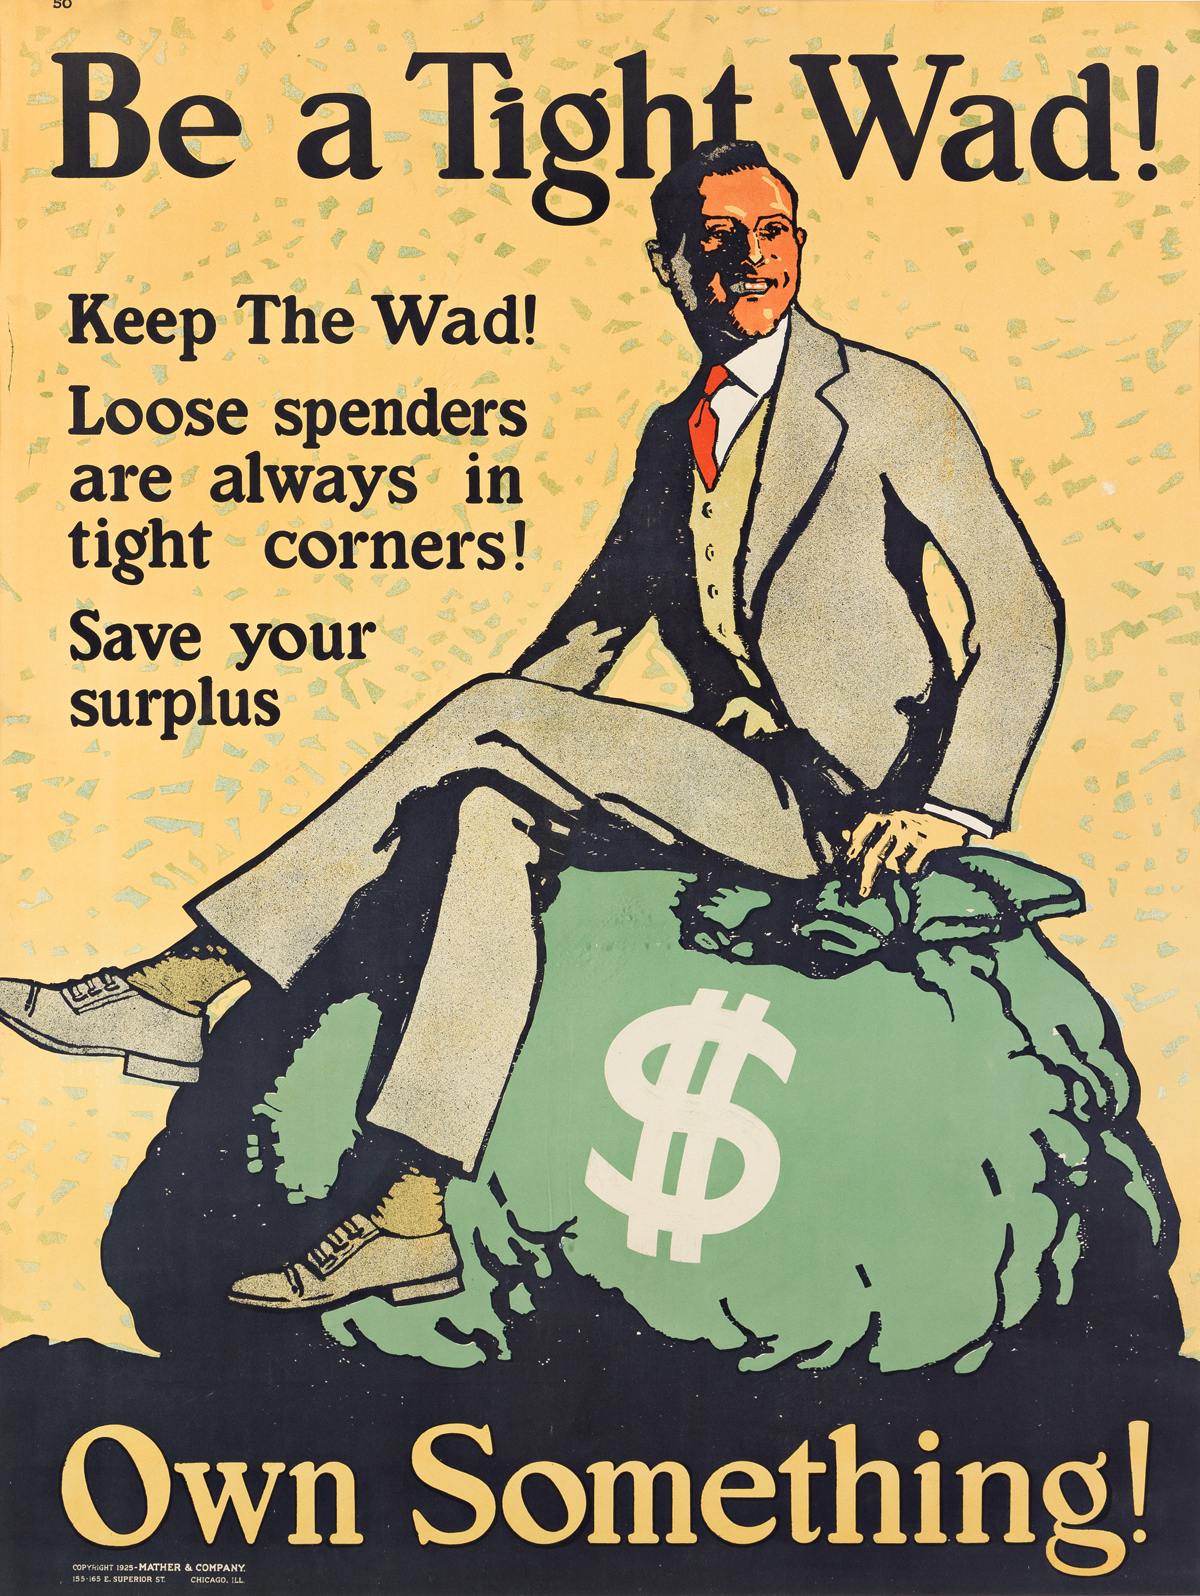 DESIGNER UNKNOWN.  BE A TIGHT WAD! OWN SOMETHING! 1925. 48x36 inches, 122x91 cm. Mather & Company, Chicago.